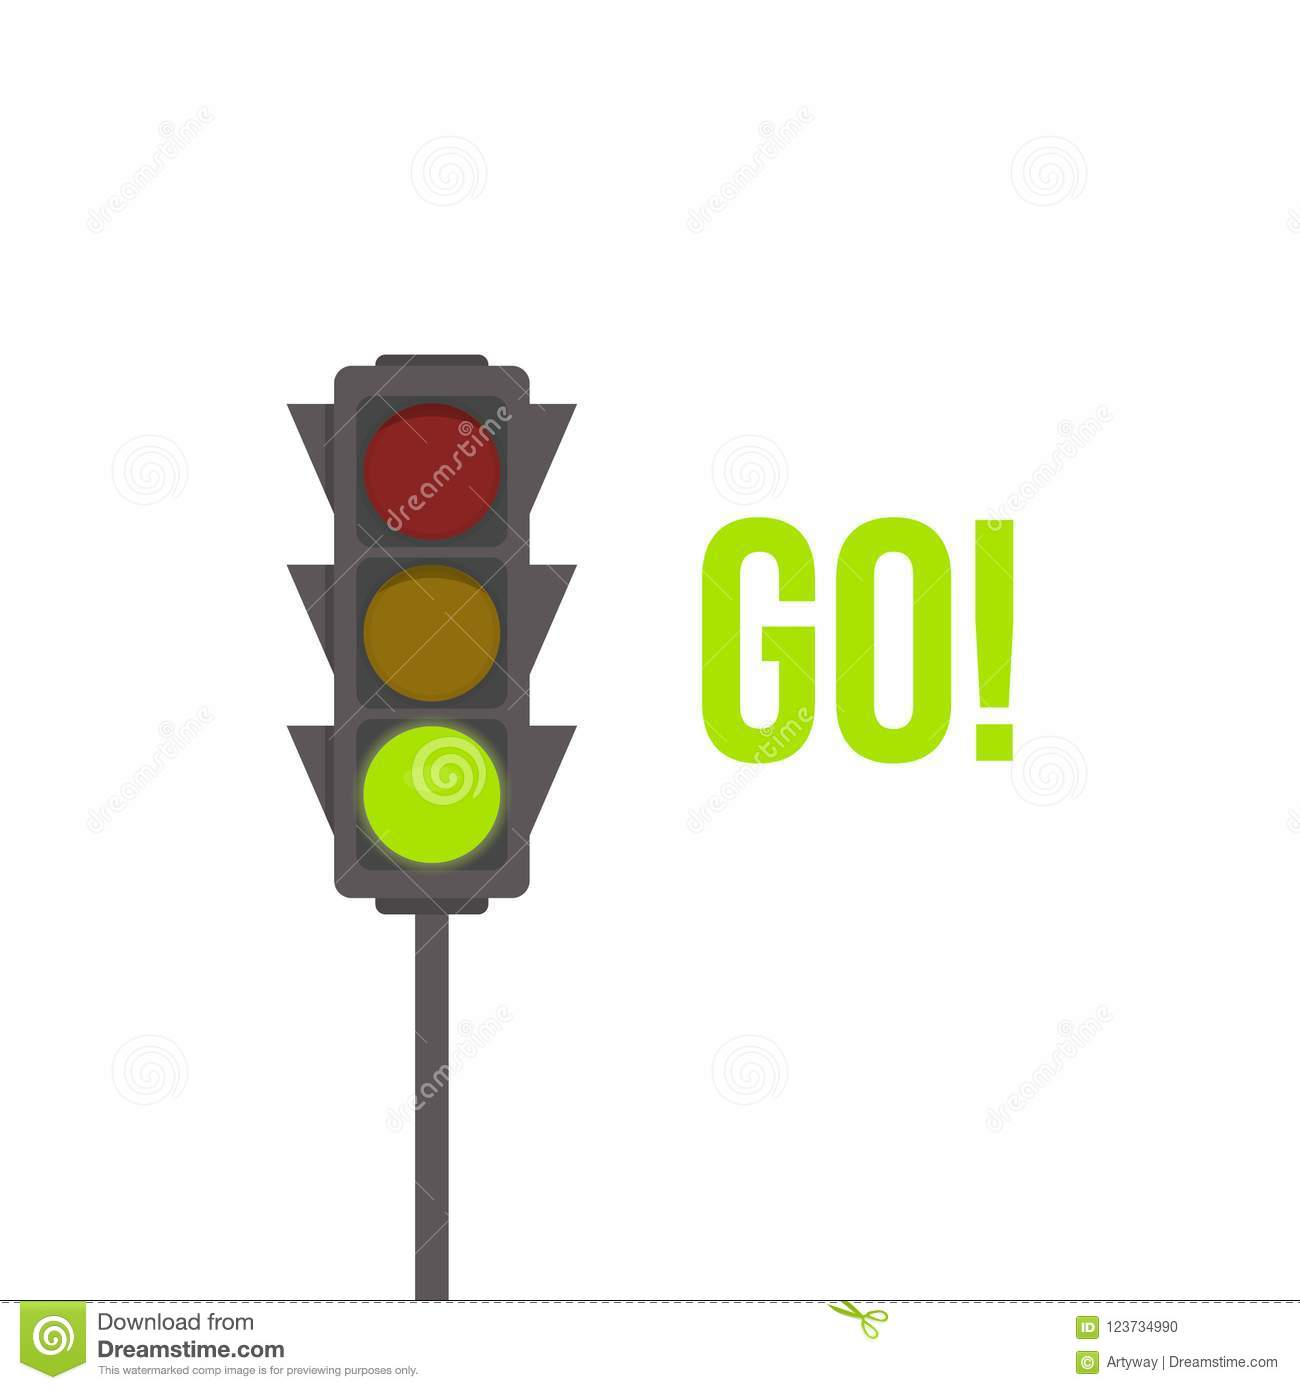 traffic light isolated icon green light vector illustration road intersection regulation sign traffic rules design stock vector illustration of control logo 123734990 https www dreamstime com traffic light isolated icon green light vector illustration road intersection regulation sign traffic rules design traffic light image123734990